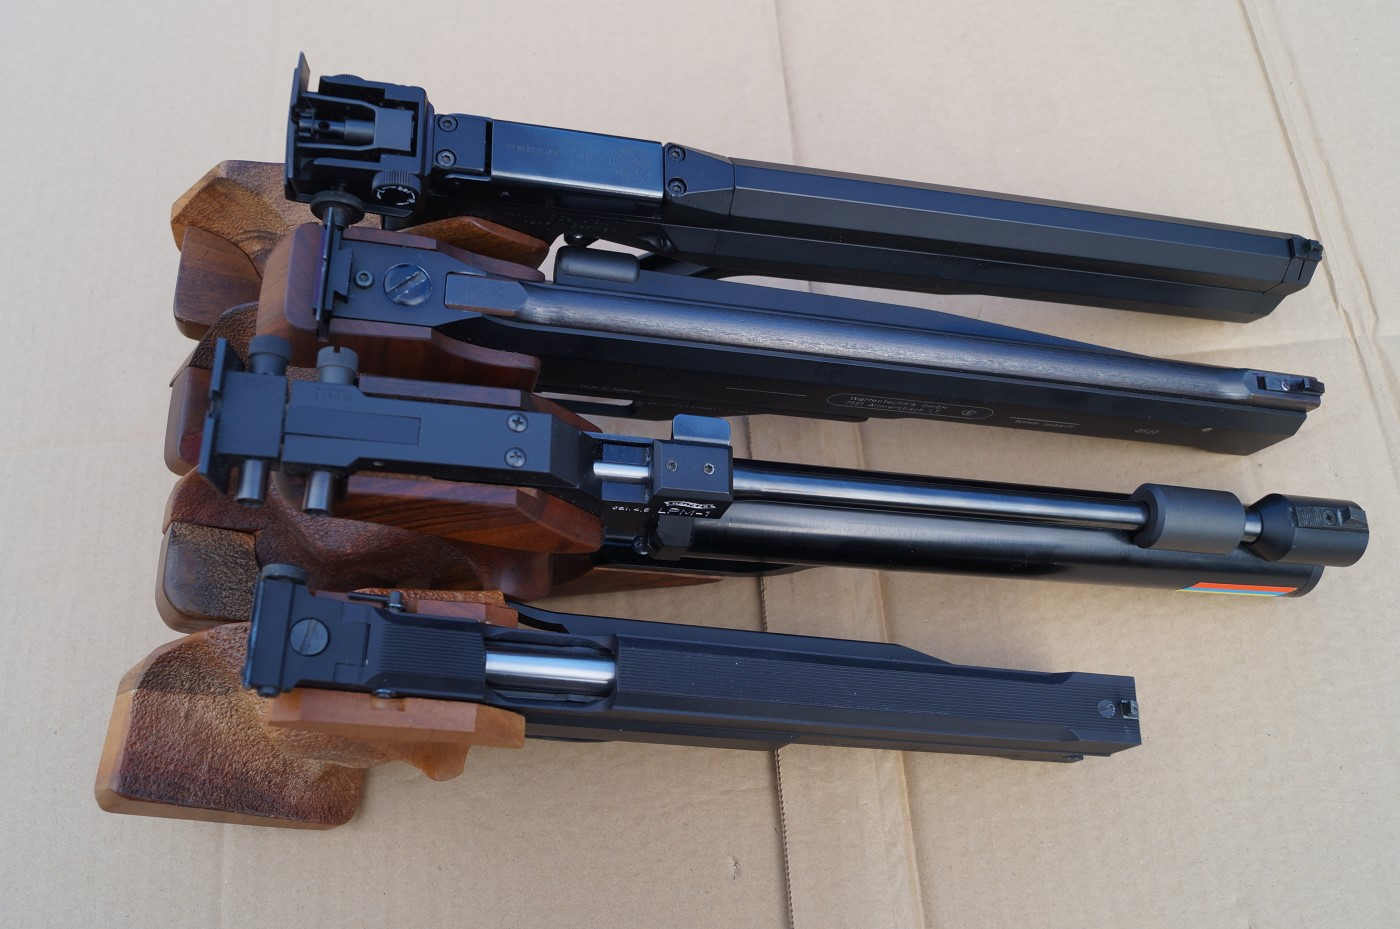 Collection of 10m single-stroke pneumatic air pistols